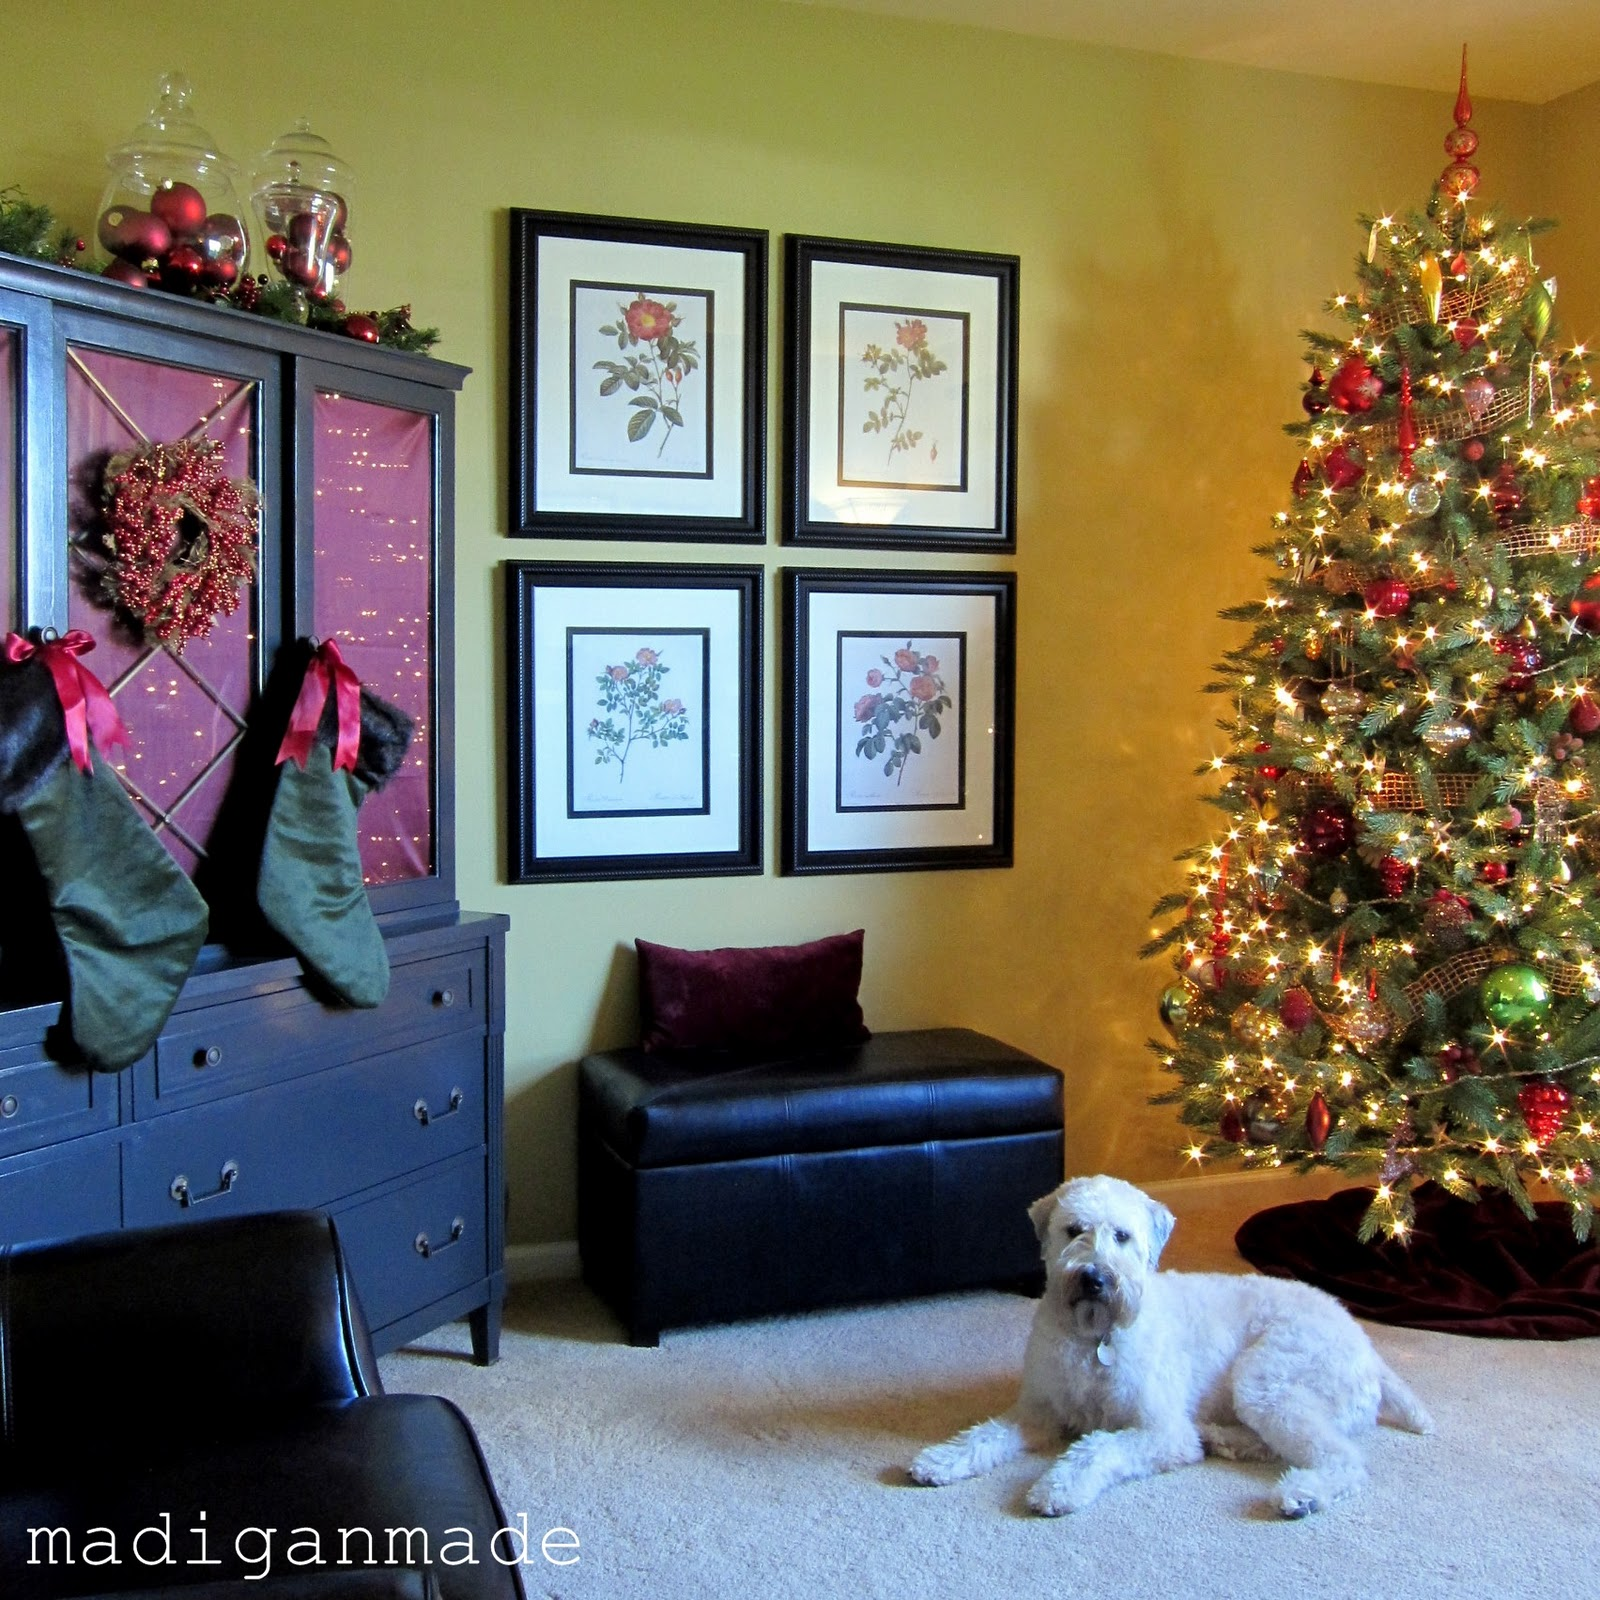 Simple steps for holiday decorating  a house tour    Rosyscription Simple steps for holiday decorating  a house tour